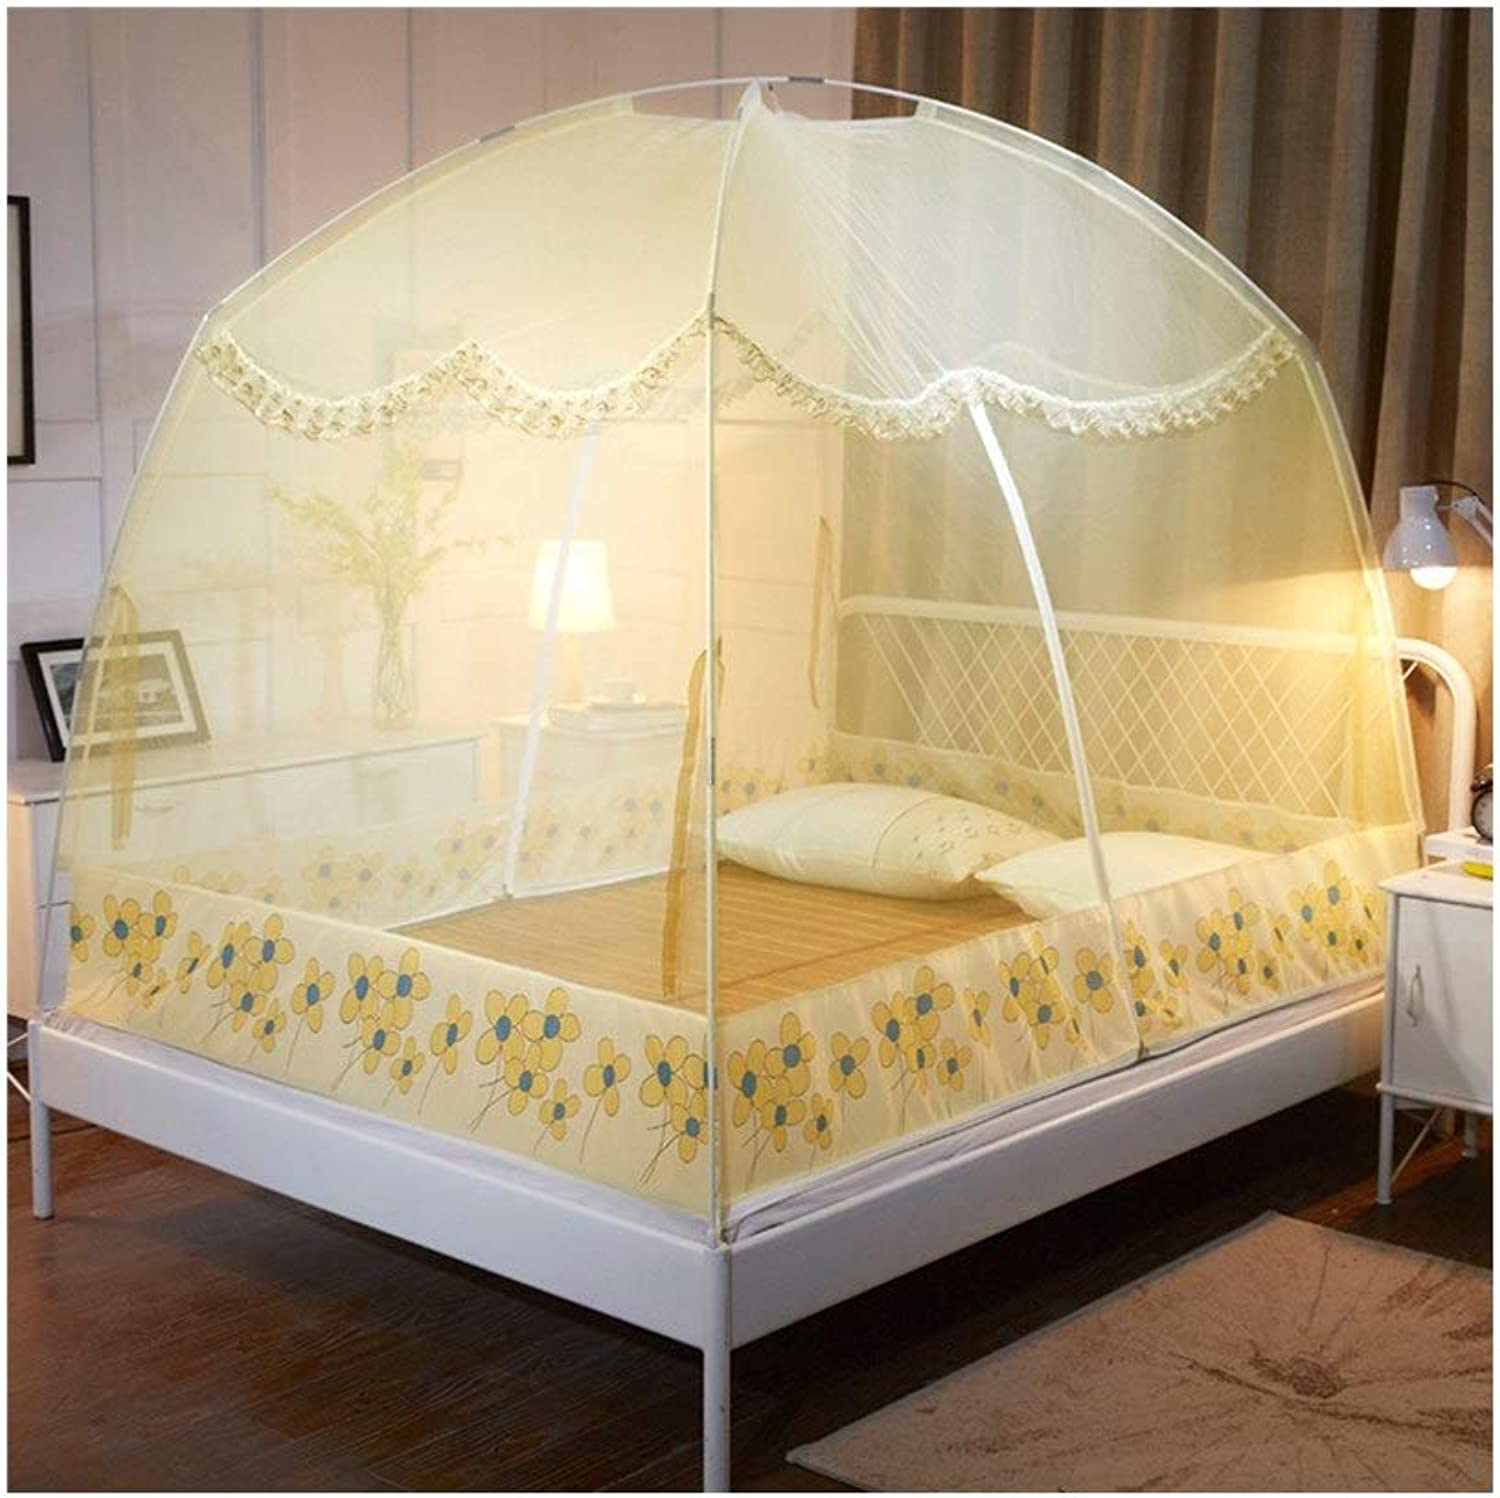 Mongolian yurt Mosquito net Free Inssizetion Double Door Home Tent Bracket encryption Thickening Folding Anti-Fall for 1.5 m Bed 1.8 m Bed (color   Yellow, Size   1.2m Bed)